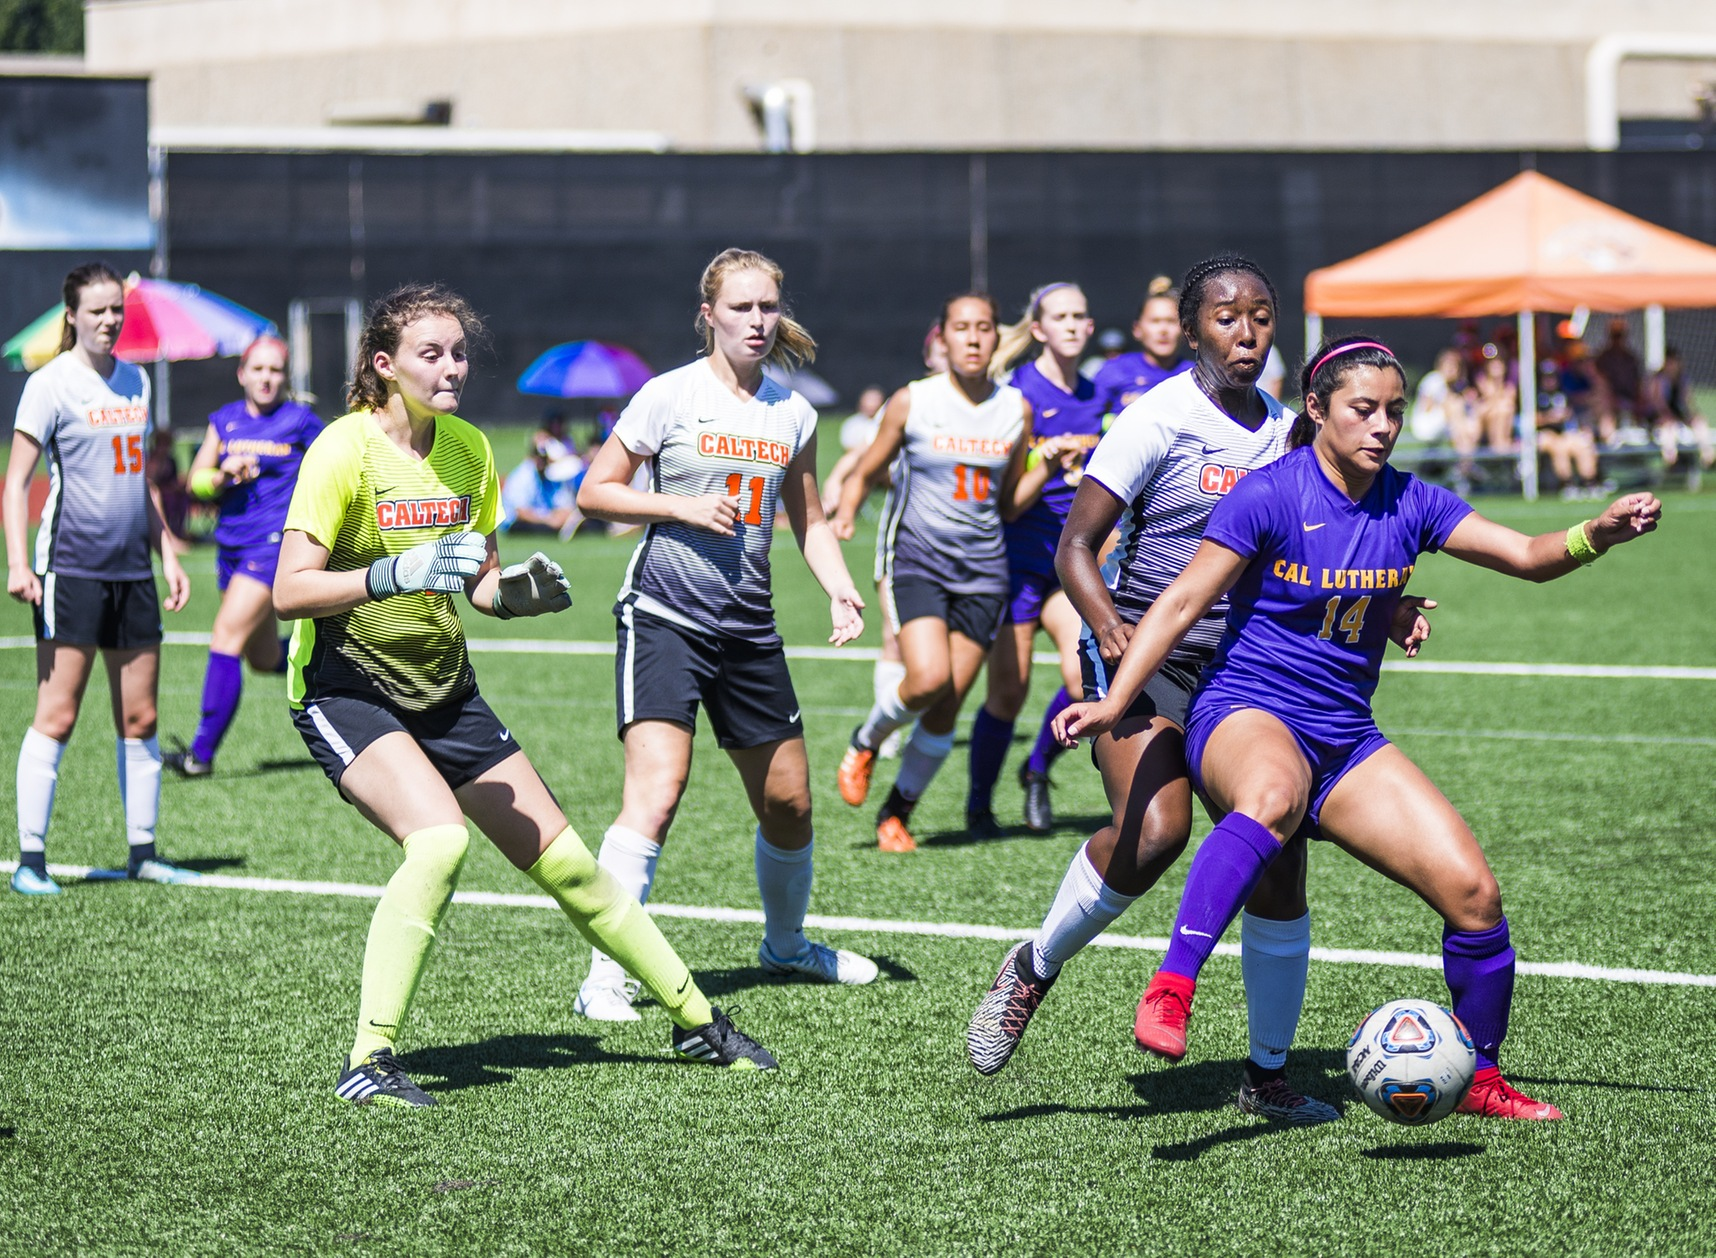 Women's Soccer Holds Defending Champs Scoreless for 80-Plus